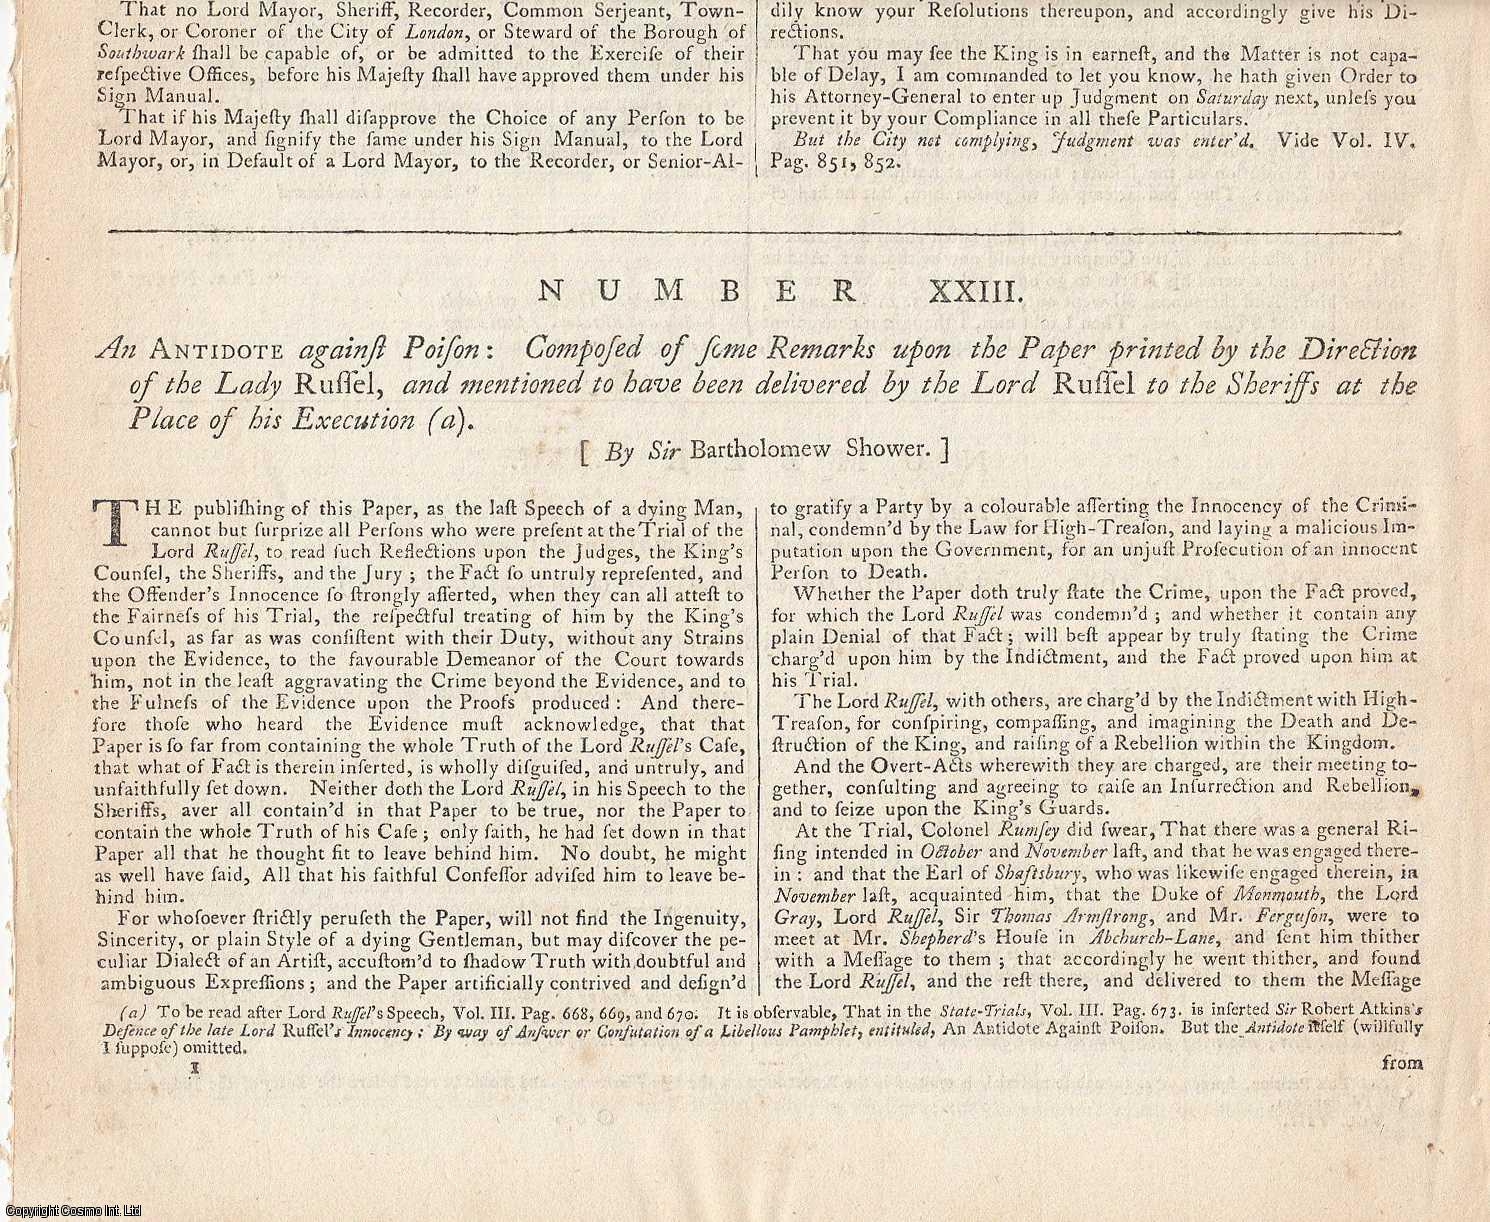 RYE HOUSE PLOT, 1683.  A comprehensive collection of State Trials & Reports, featuring the trial reports of the main conspirators in the Plot to assassinate Charles II and his brother James Stuart.  Contains 11 trial reports and 8 other reports., [Trial].